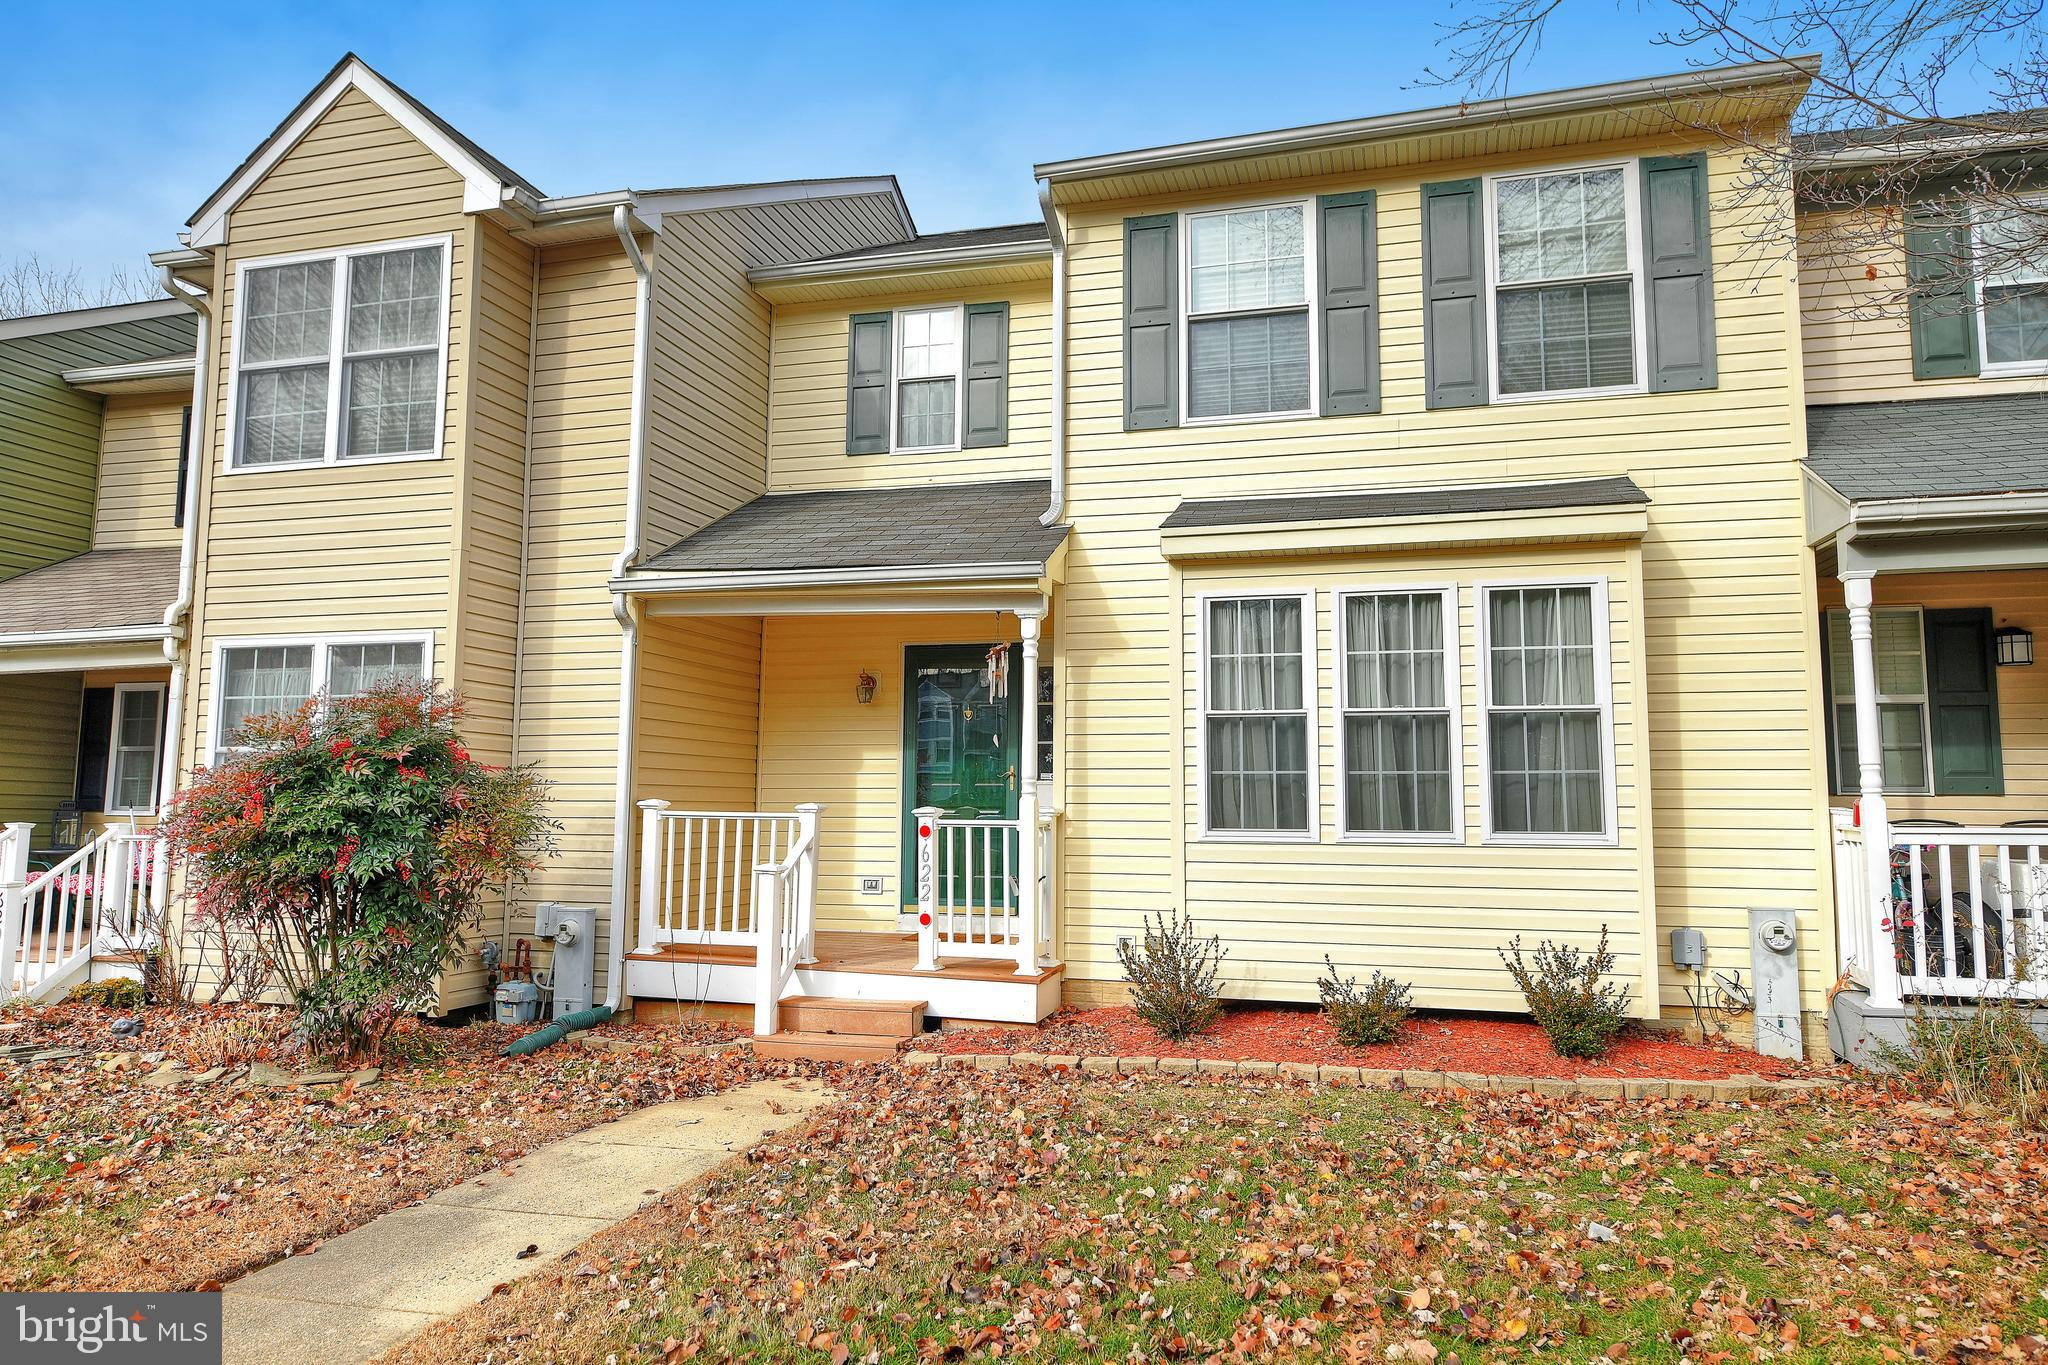 Nice townhome in move in ready condition. Newer HVAC system. All floors are wood or tile. Partially